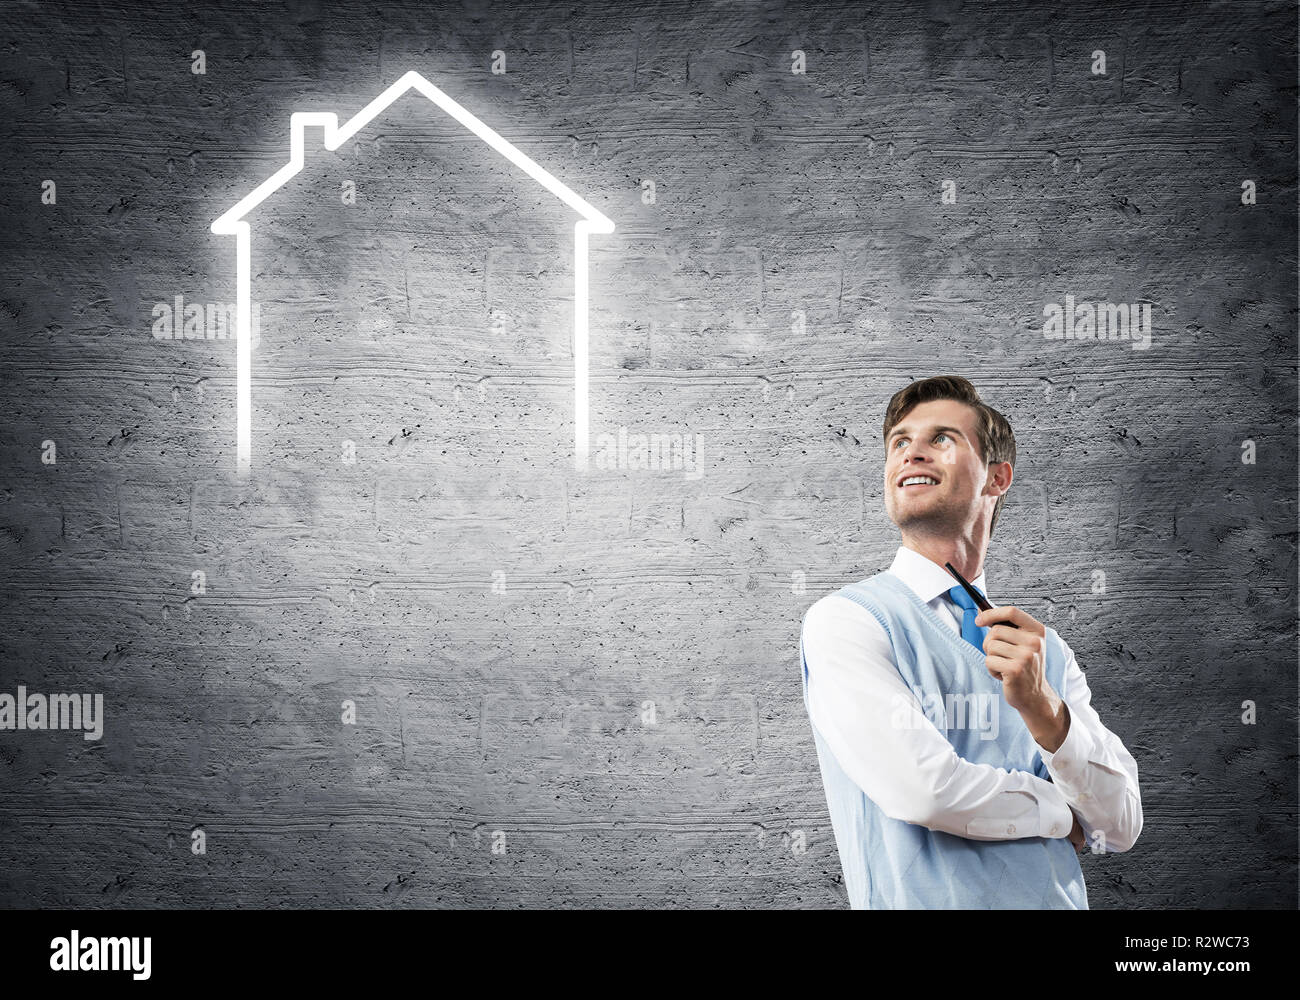 Elegant banker wearing red tie and house sign as banking concept - Stock Image